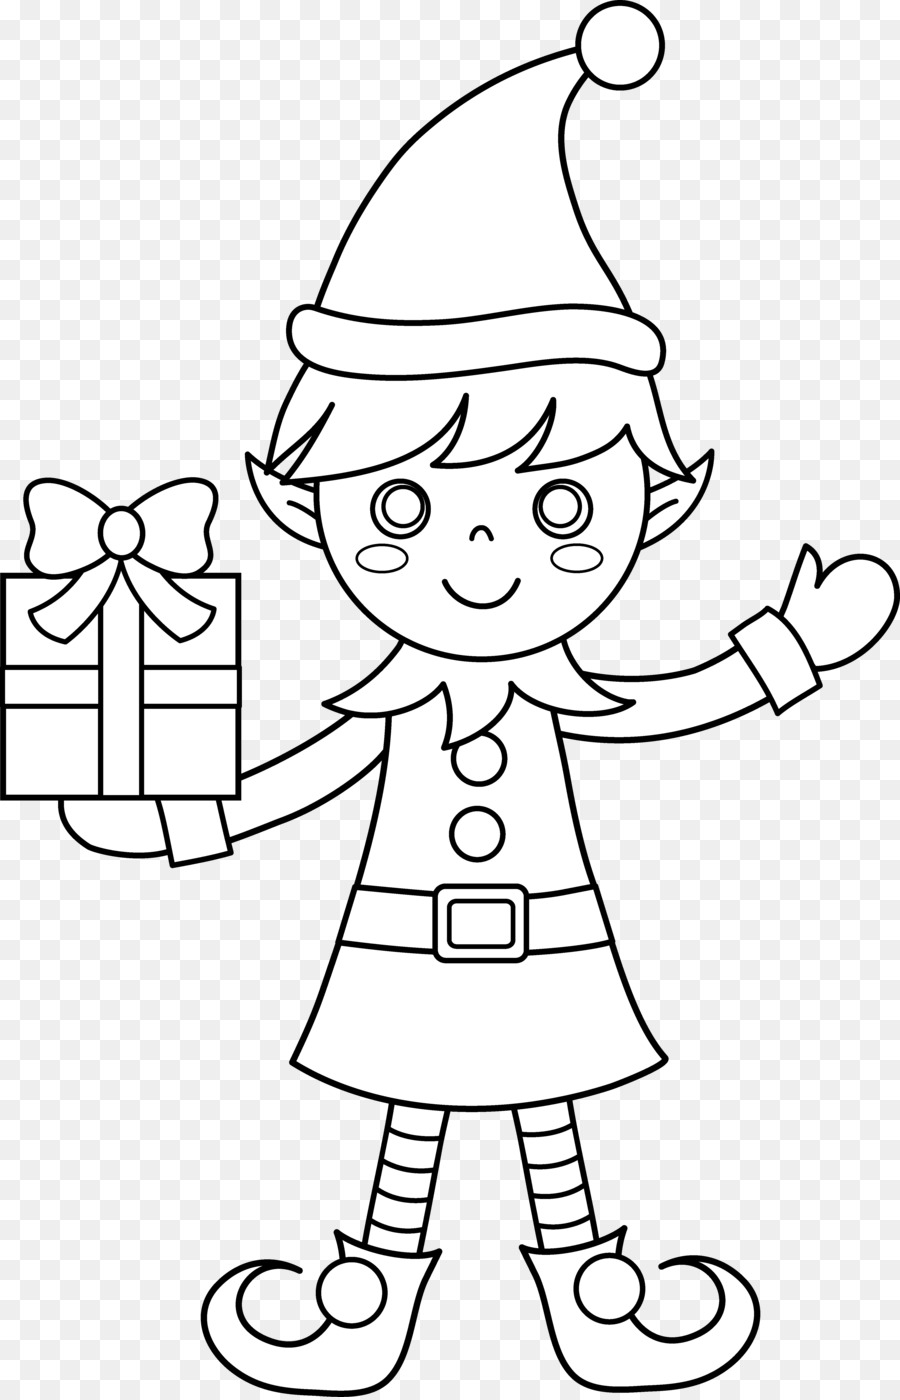 the elf on the shelf santa claus christmas elf coloring book page clipart